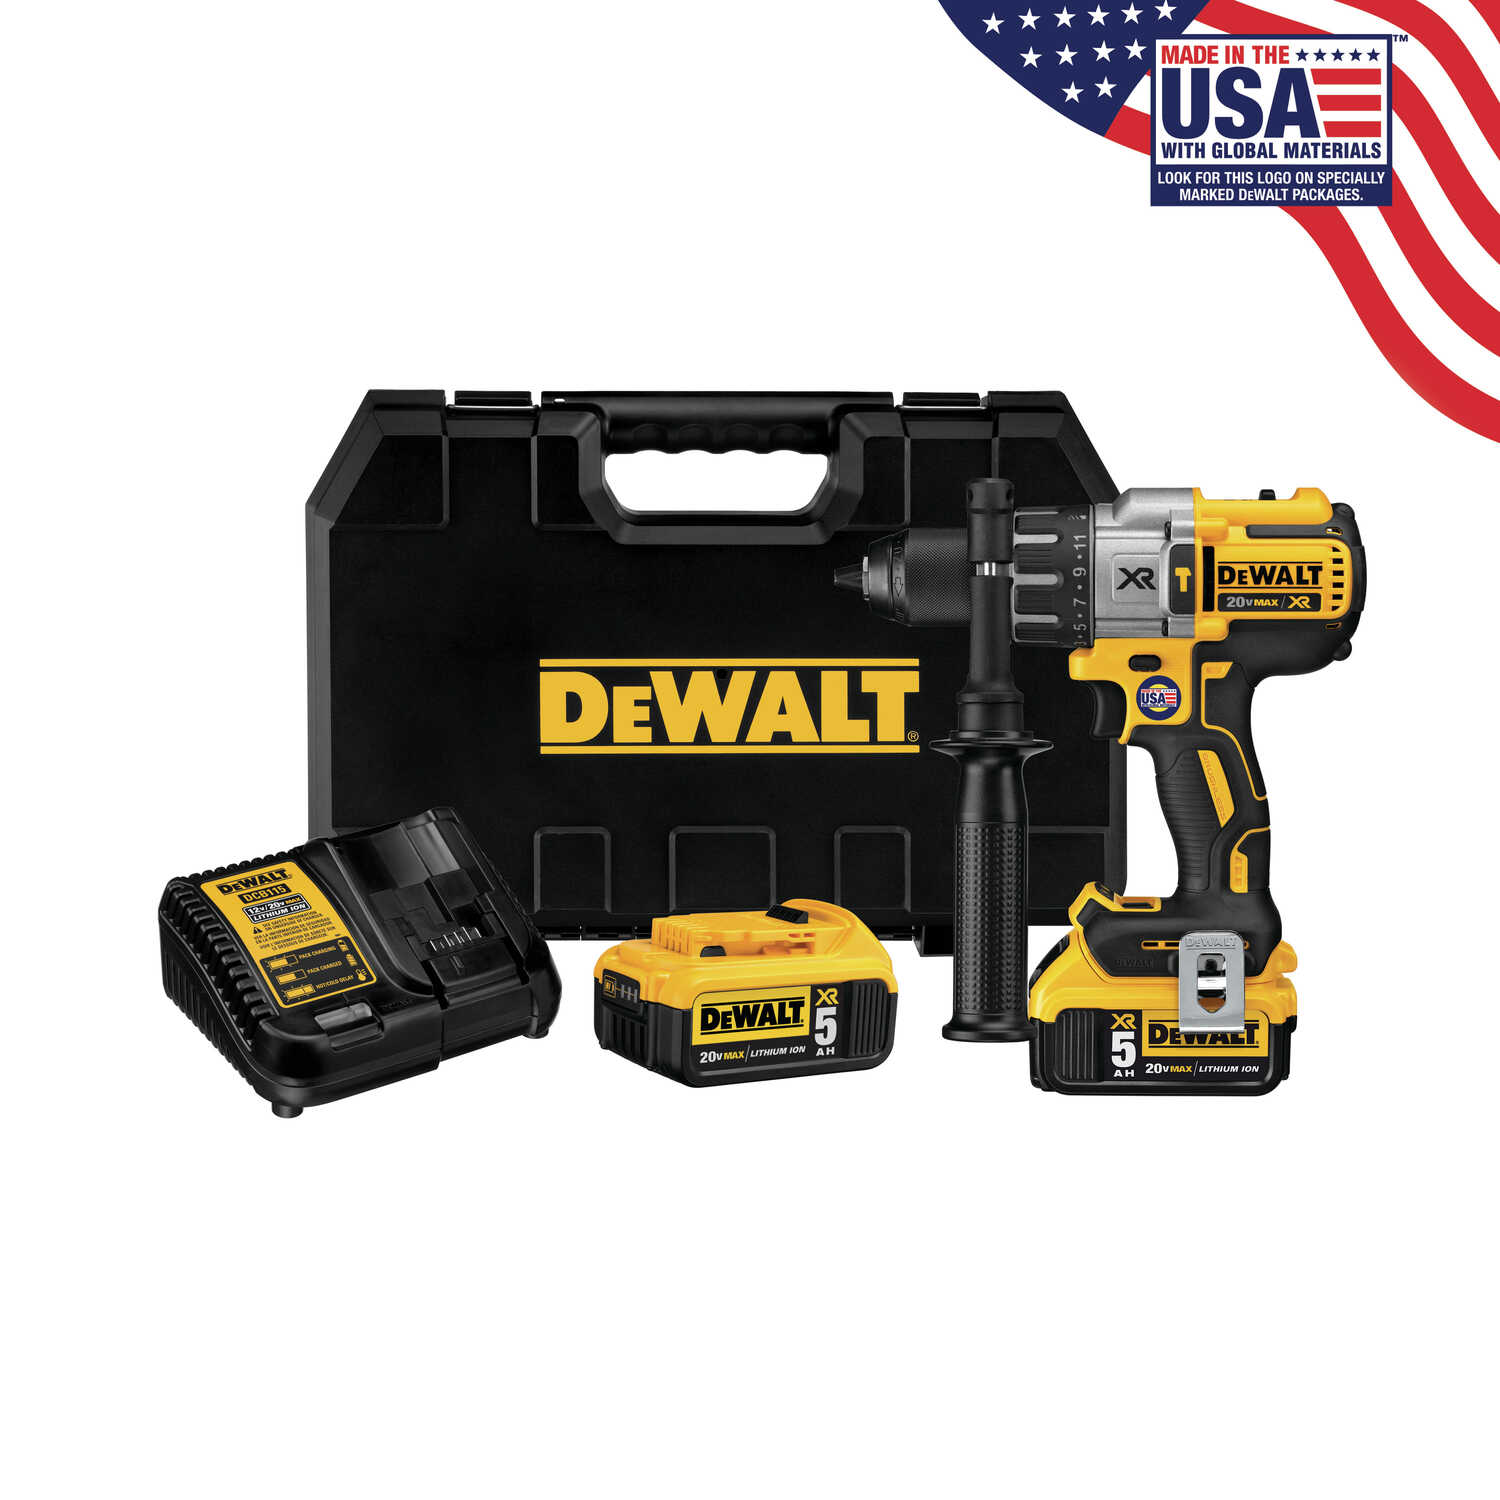 DeWalt  XR  20 volt Brushless  Cordless Hammer Drill/Driver  Kit  1/2 in. Metal Ratcheting  2250 rpm